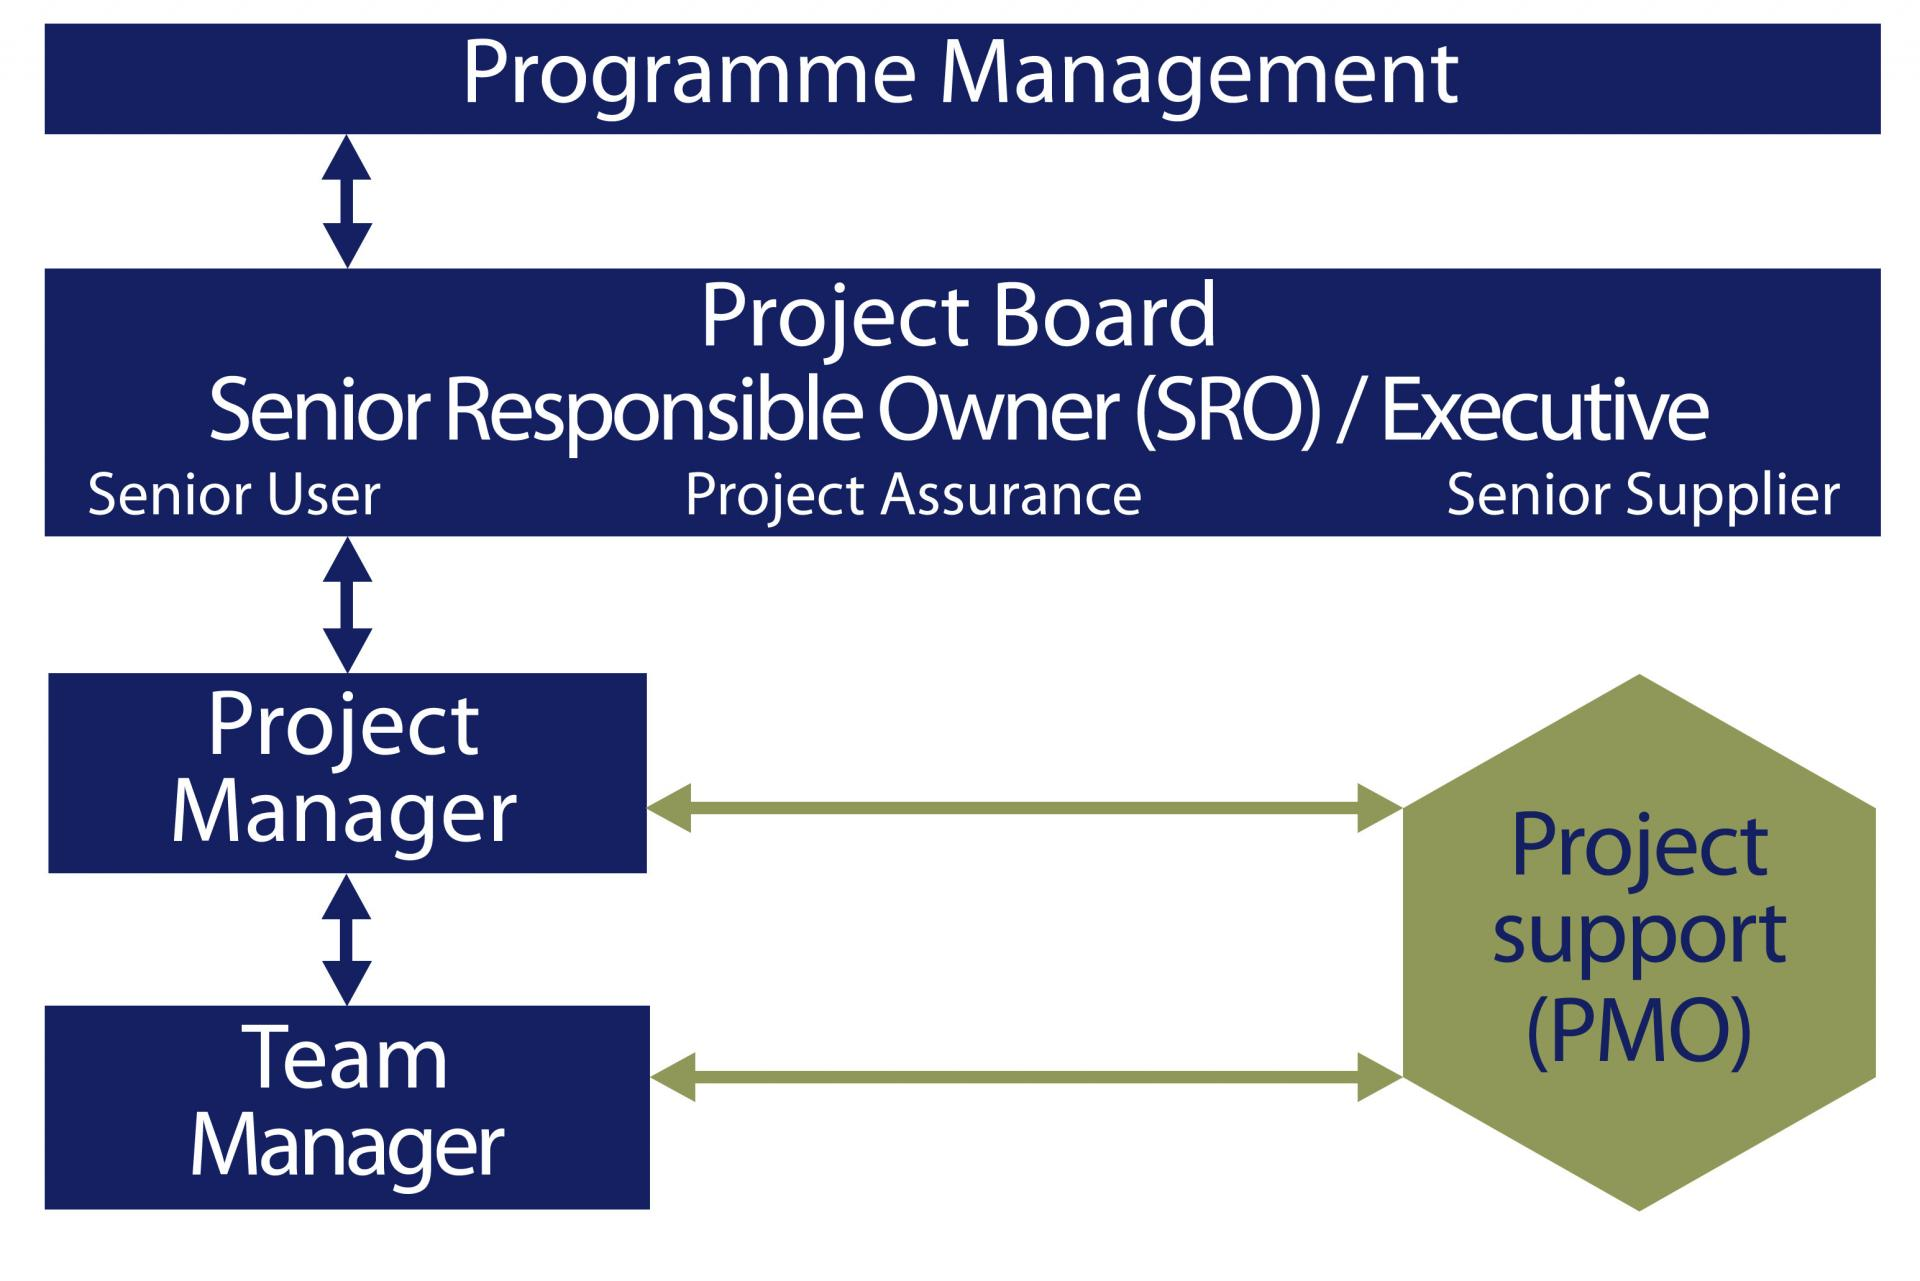 Project Manager Duties Responsibilities Role Of The Programme And Project Management Offices Department